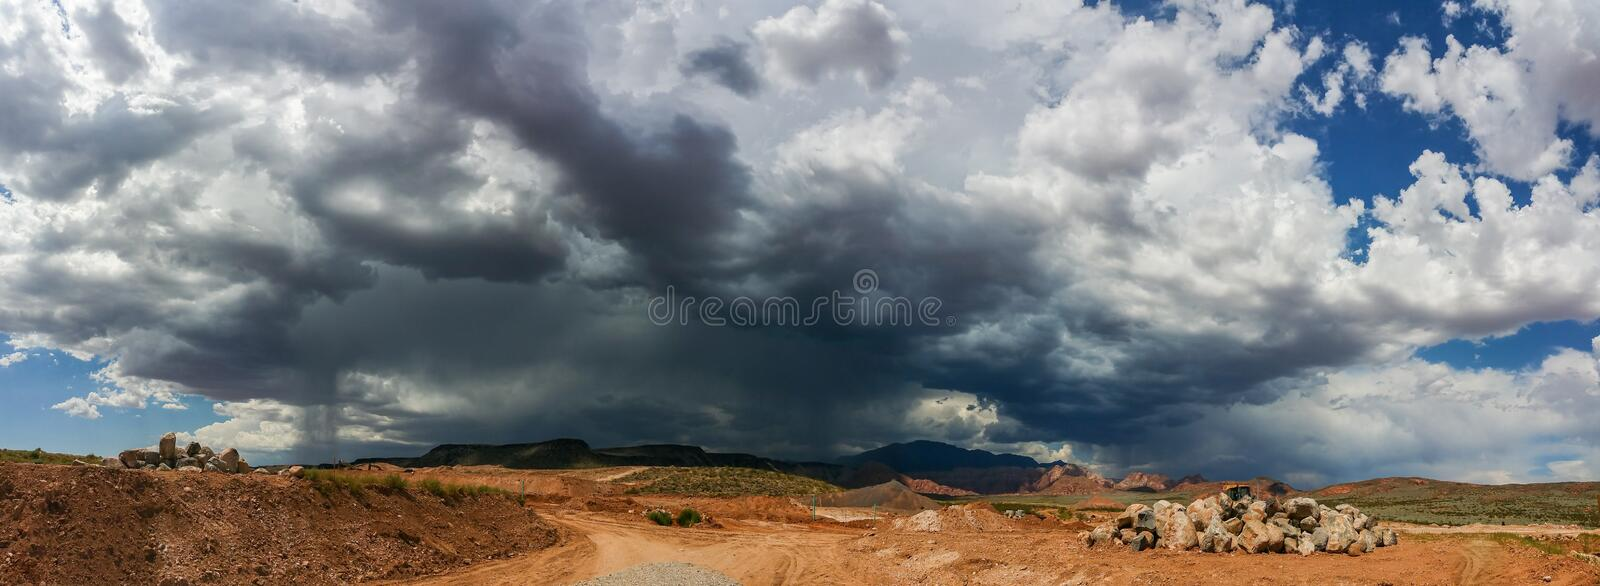 Ominous Stormy Sky and Cumulus Clouds with Rain Pano in the Desert.  royalty free stock photo